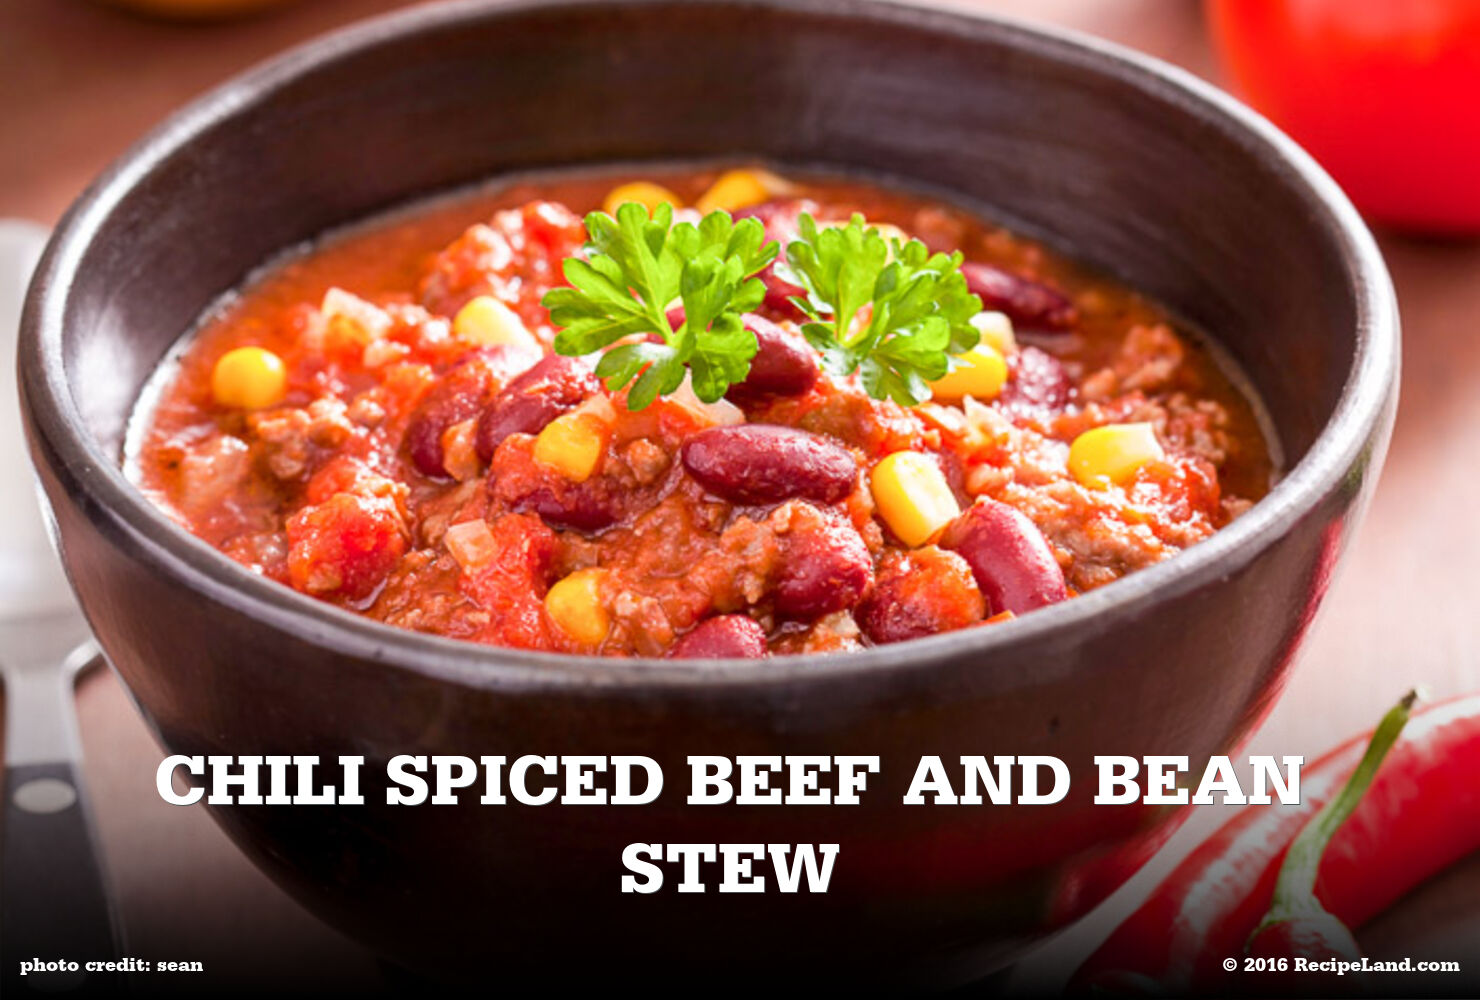 Chili Spiced Beef and Bean Stew